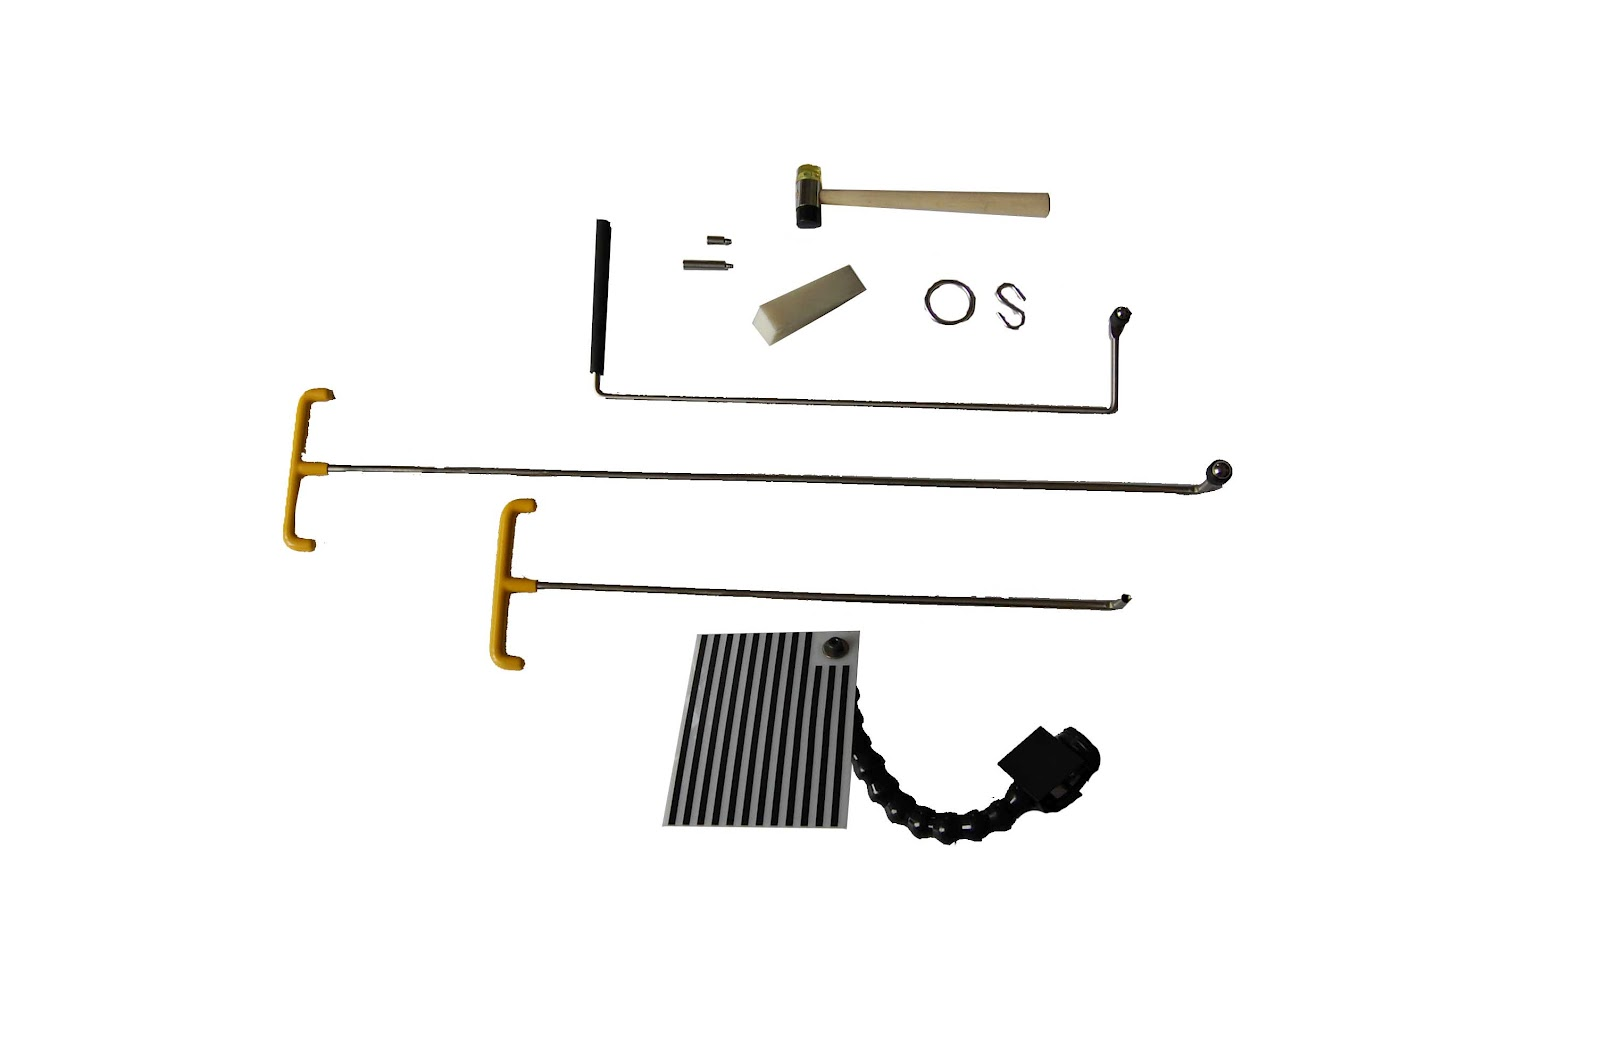 Smart Repair Hbc System Magnetic Pdr Roll Tip Kit